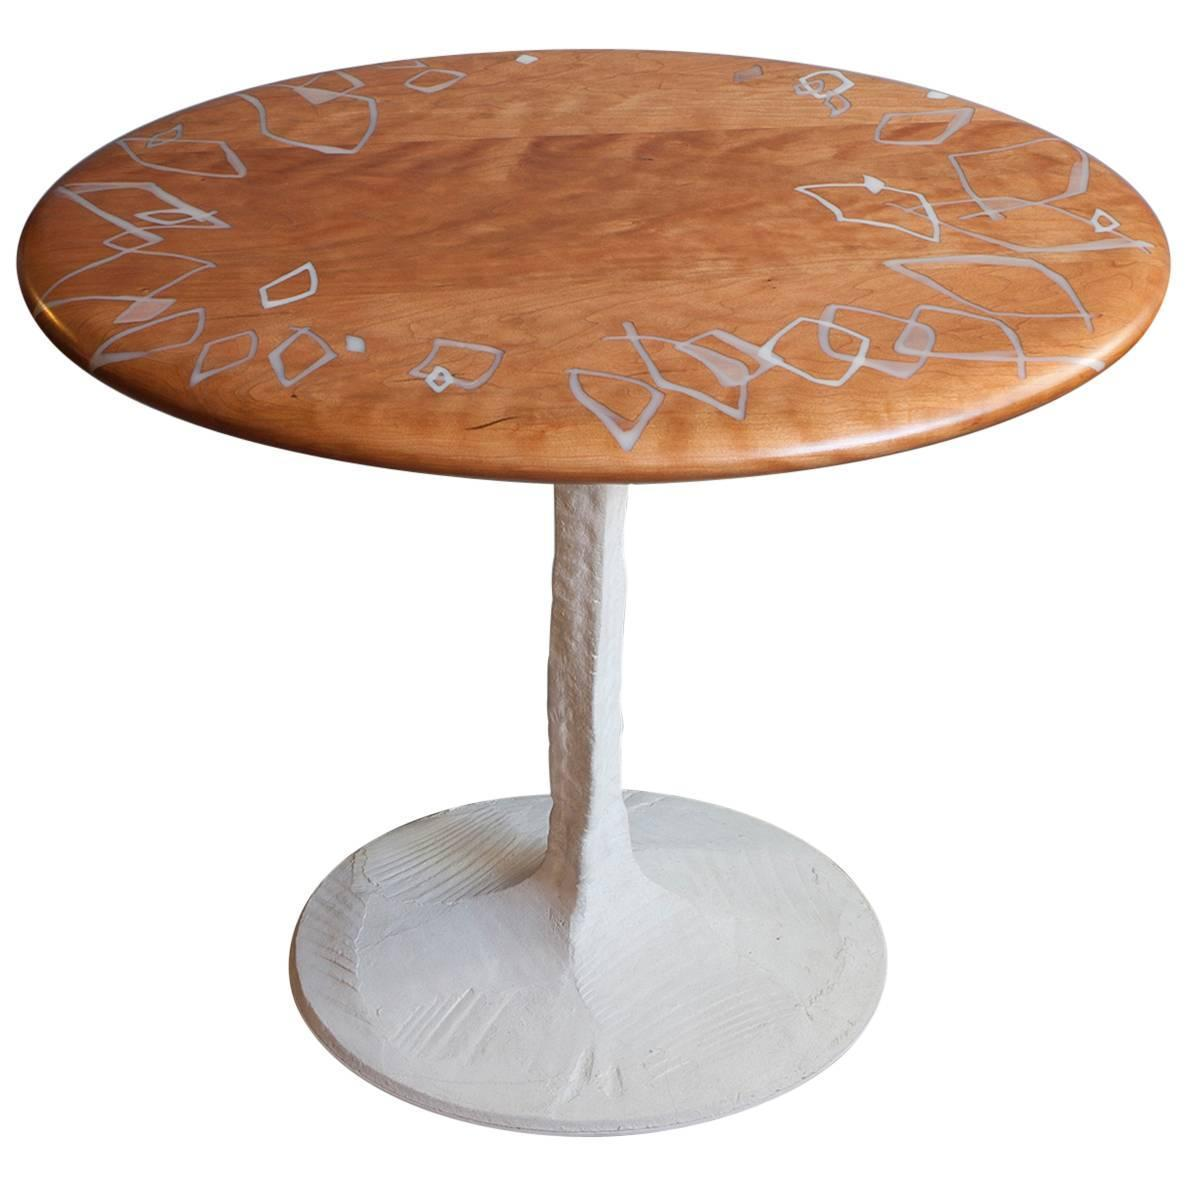 A Syrian Mother Of Pearl Bench Available To Purchase At: Sky With Diamonds Side Table, Cherry With Inlaid Resin And